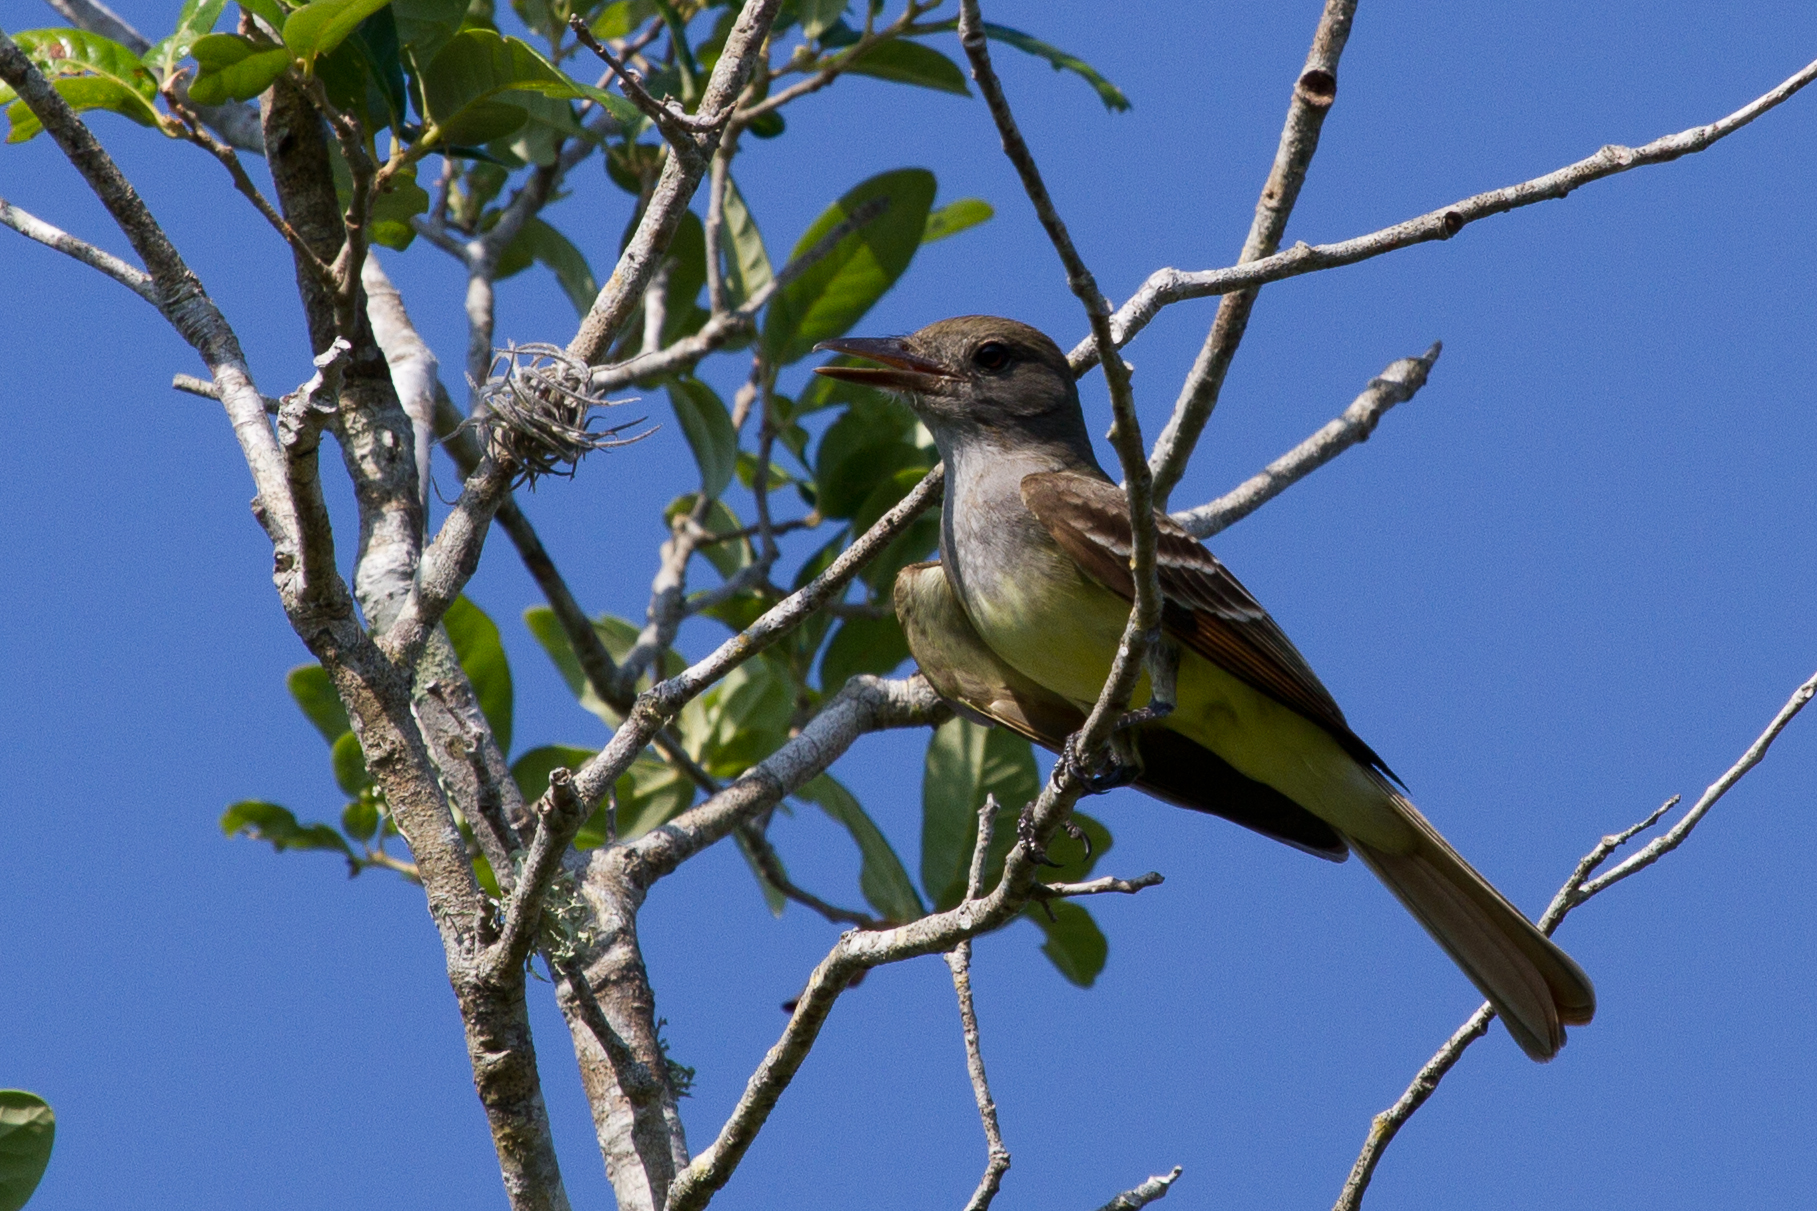 Great Crested Flycatcher near Sarasota